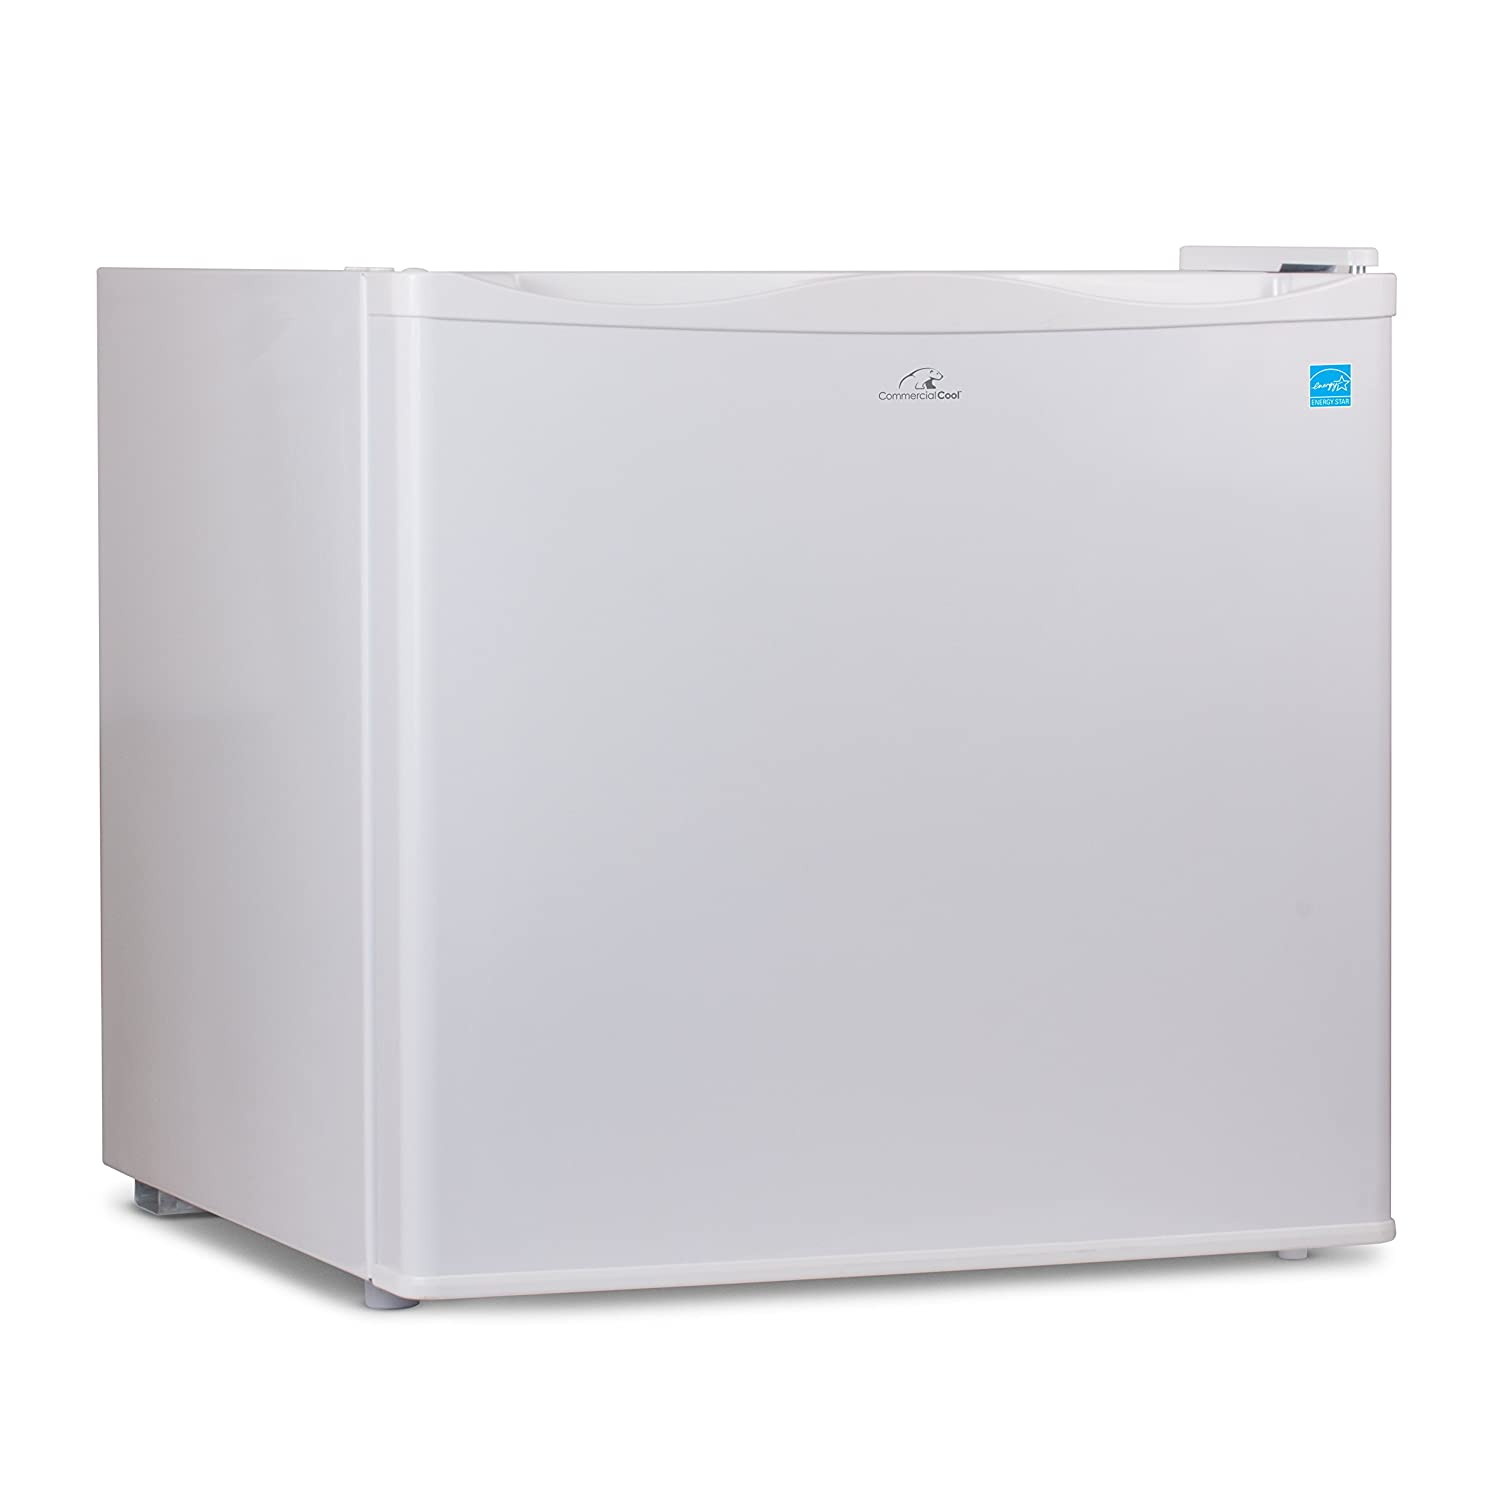 Commercial Cool CCUK12W 1.2 Cu. Ft. Upright Freezer with Adjustable Thermostat Control and R600a Refrigerant, White